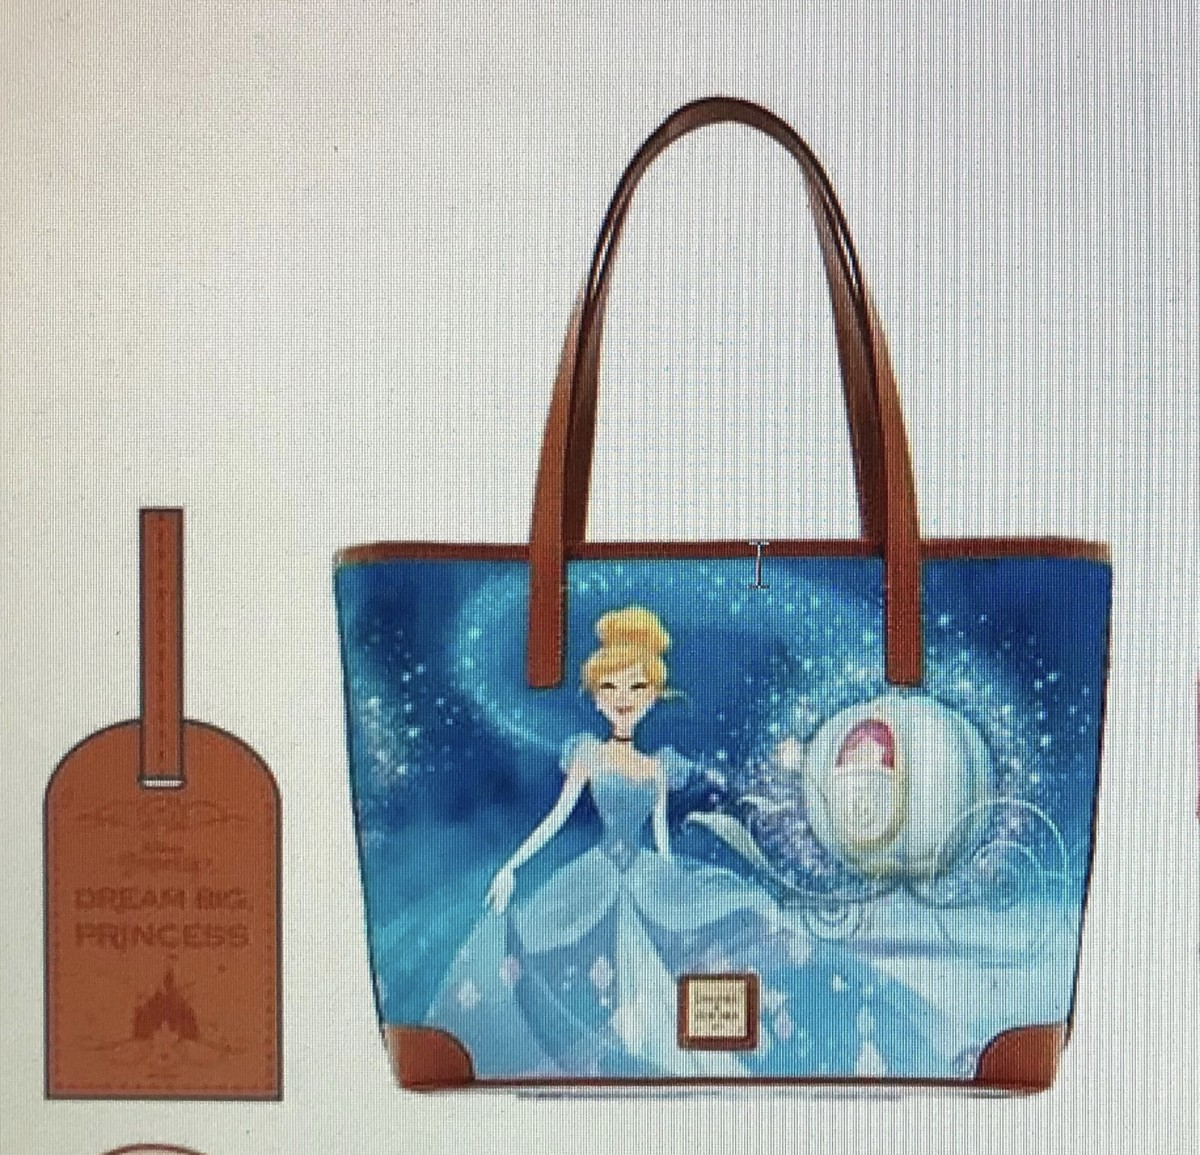 NEW Cinderella Dooney & Bourke Bags Coming to Disney Parks! Rainbow Headband Ears too! #disneystyle 2